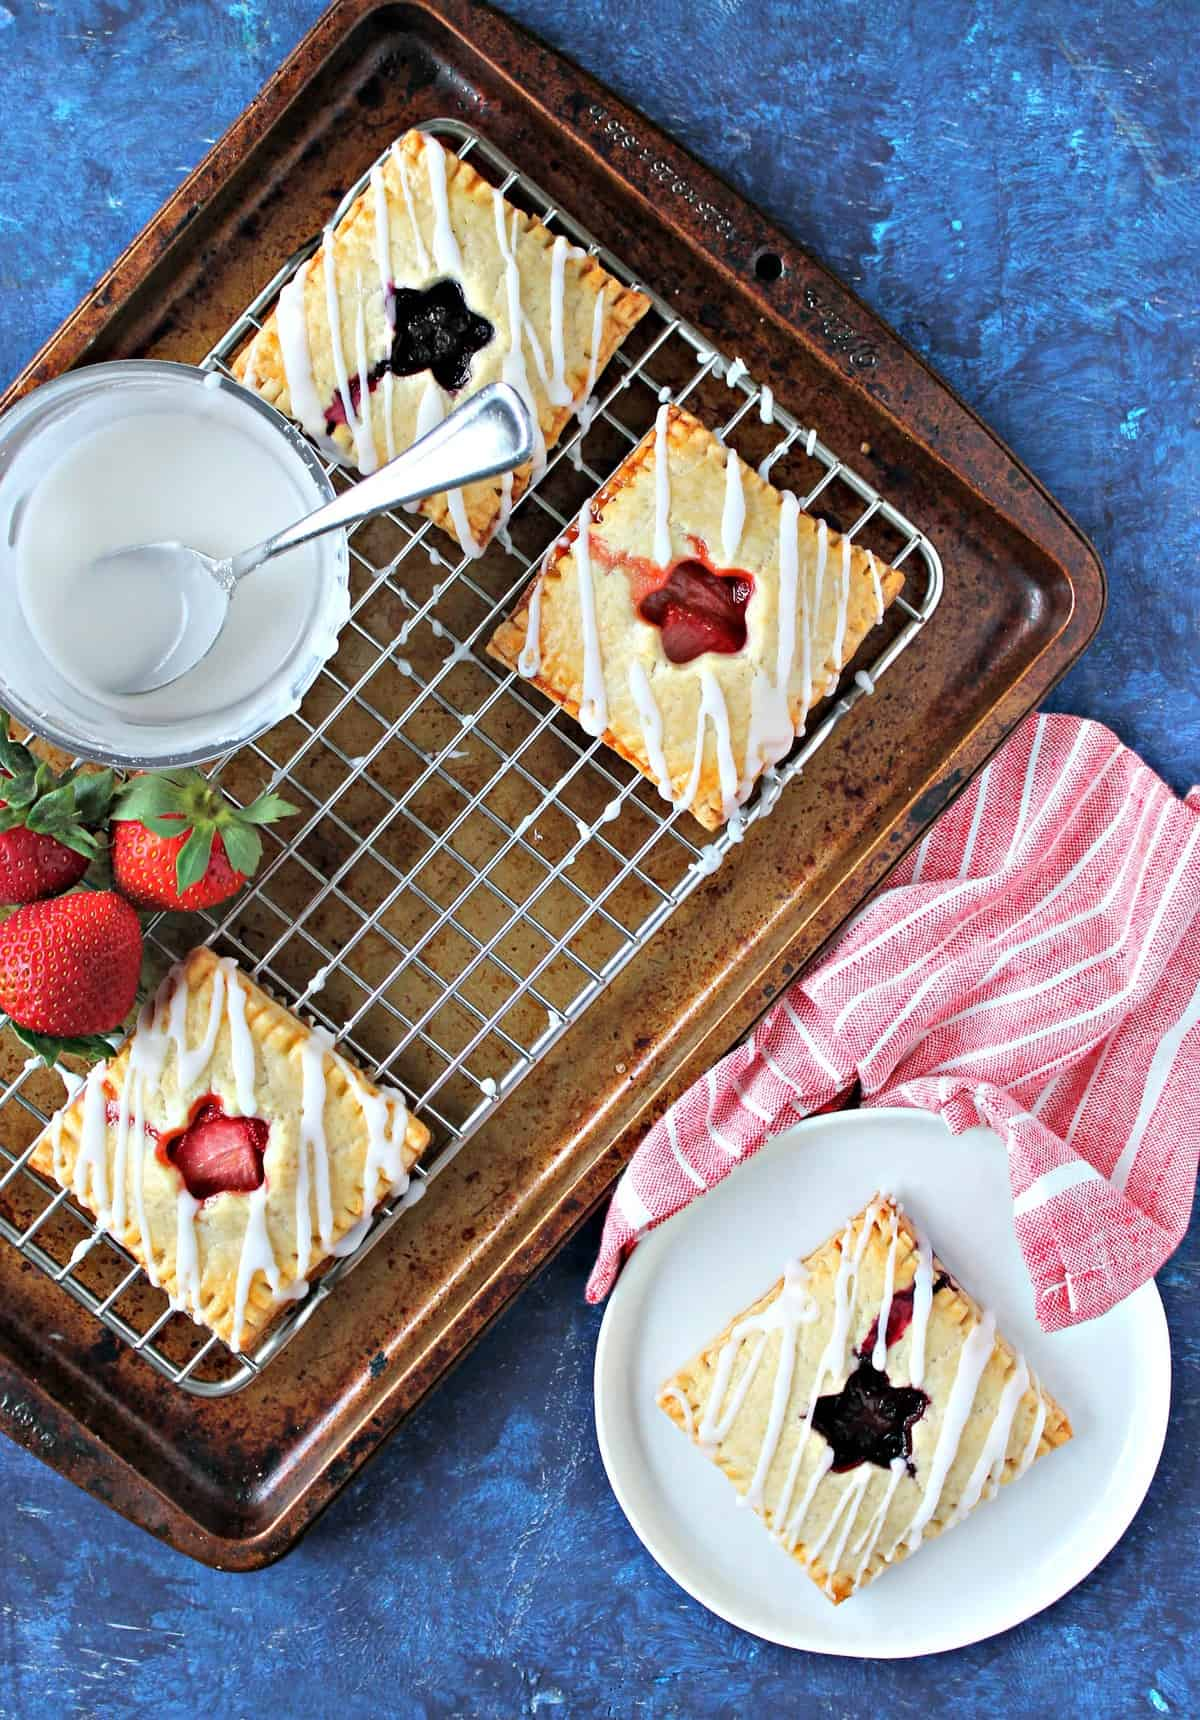 Patriotic Berry Hand Pies! These handheld, berry-filled beauties are the ultimate Memorial Day or 4th of July dessert with their red, white and blue details and star-spangled cutouts! They're easy to make and even easier to meet, making it ideal for casual celebrations and backyard barbecues.